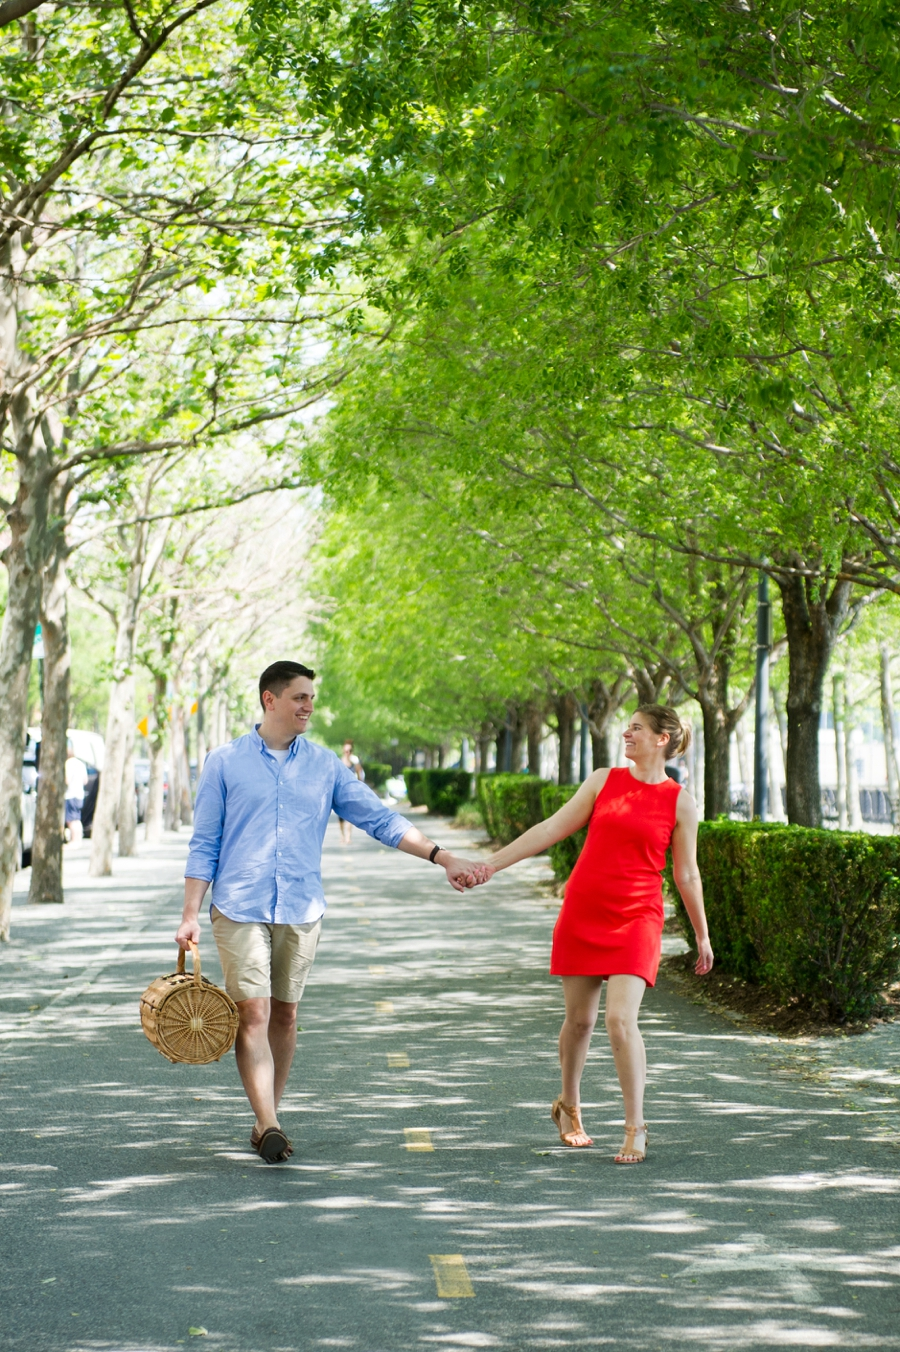 RKP_KIM_HOBOKEN_ENGAGEMENT_SESSION_0007.jpg